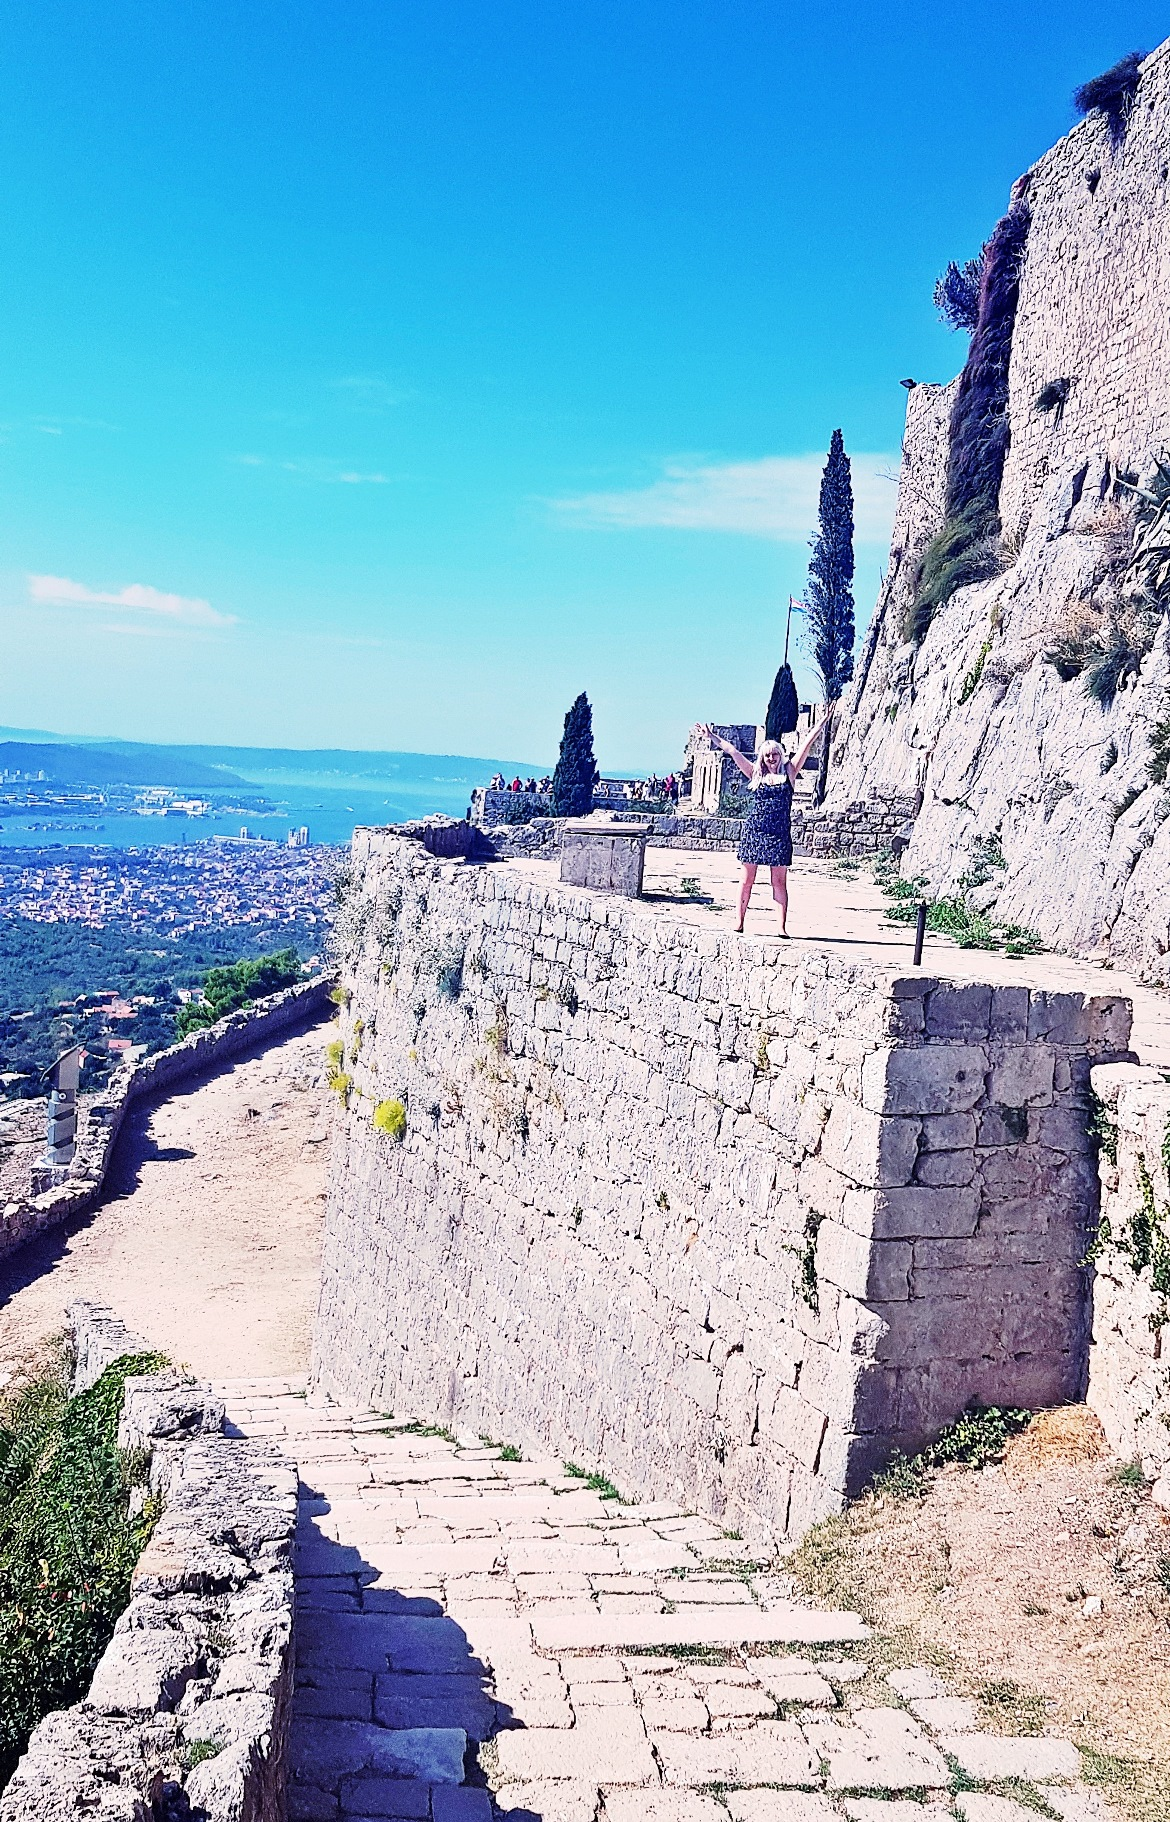 Game of Thrones filming location at Klis Fortress - Croatia in Photographs by BeckyBecky Blogs